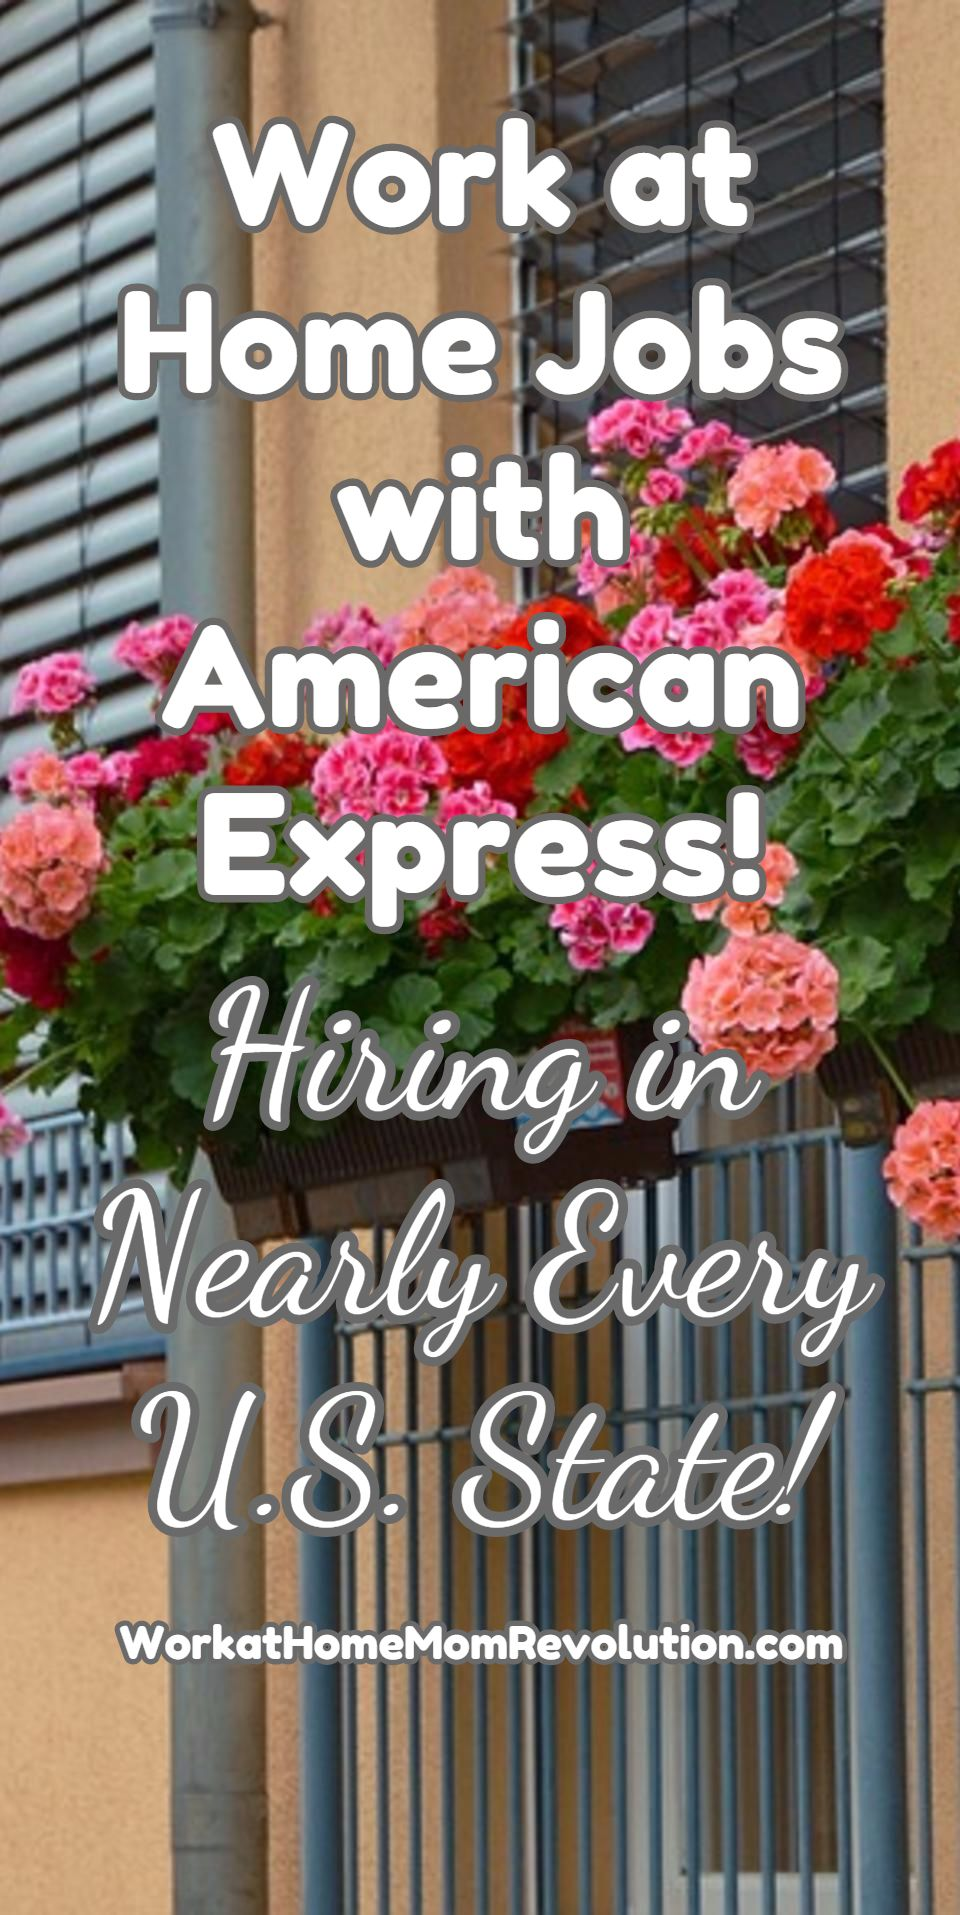 apply for american express part time virtual customer care apply for american express part time virtual customer care professional job customer care operations united states stay at home home